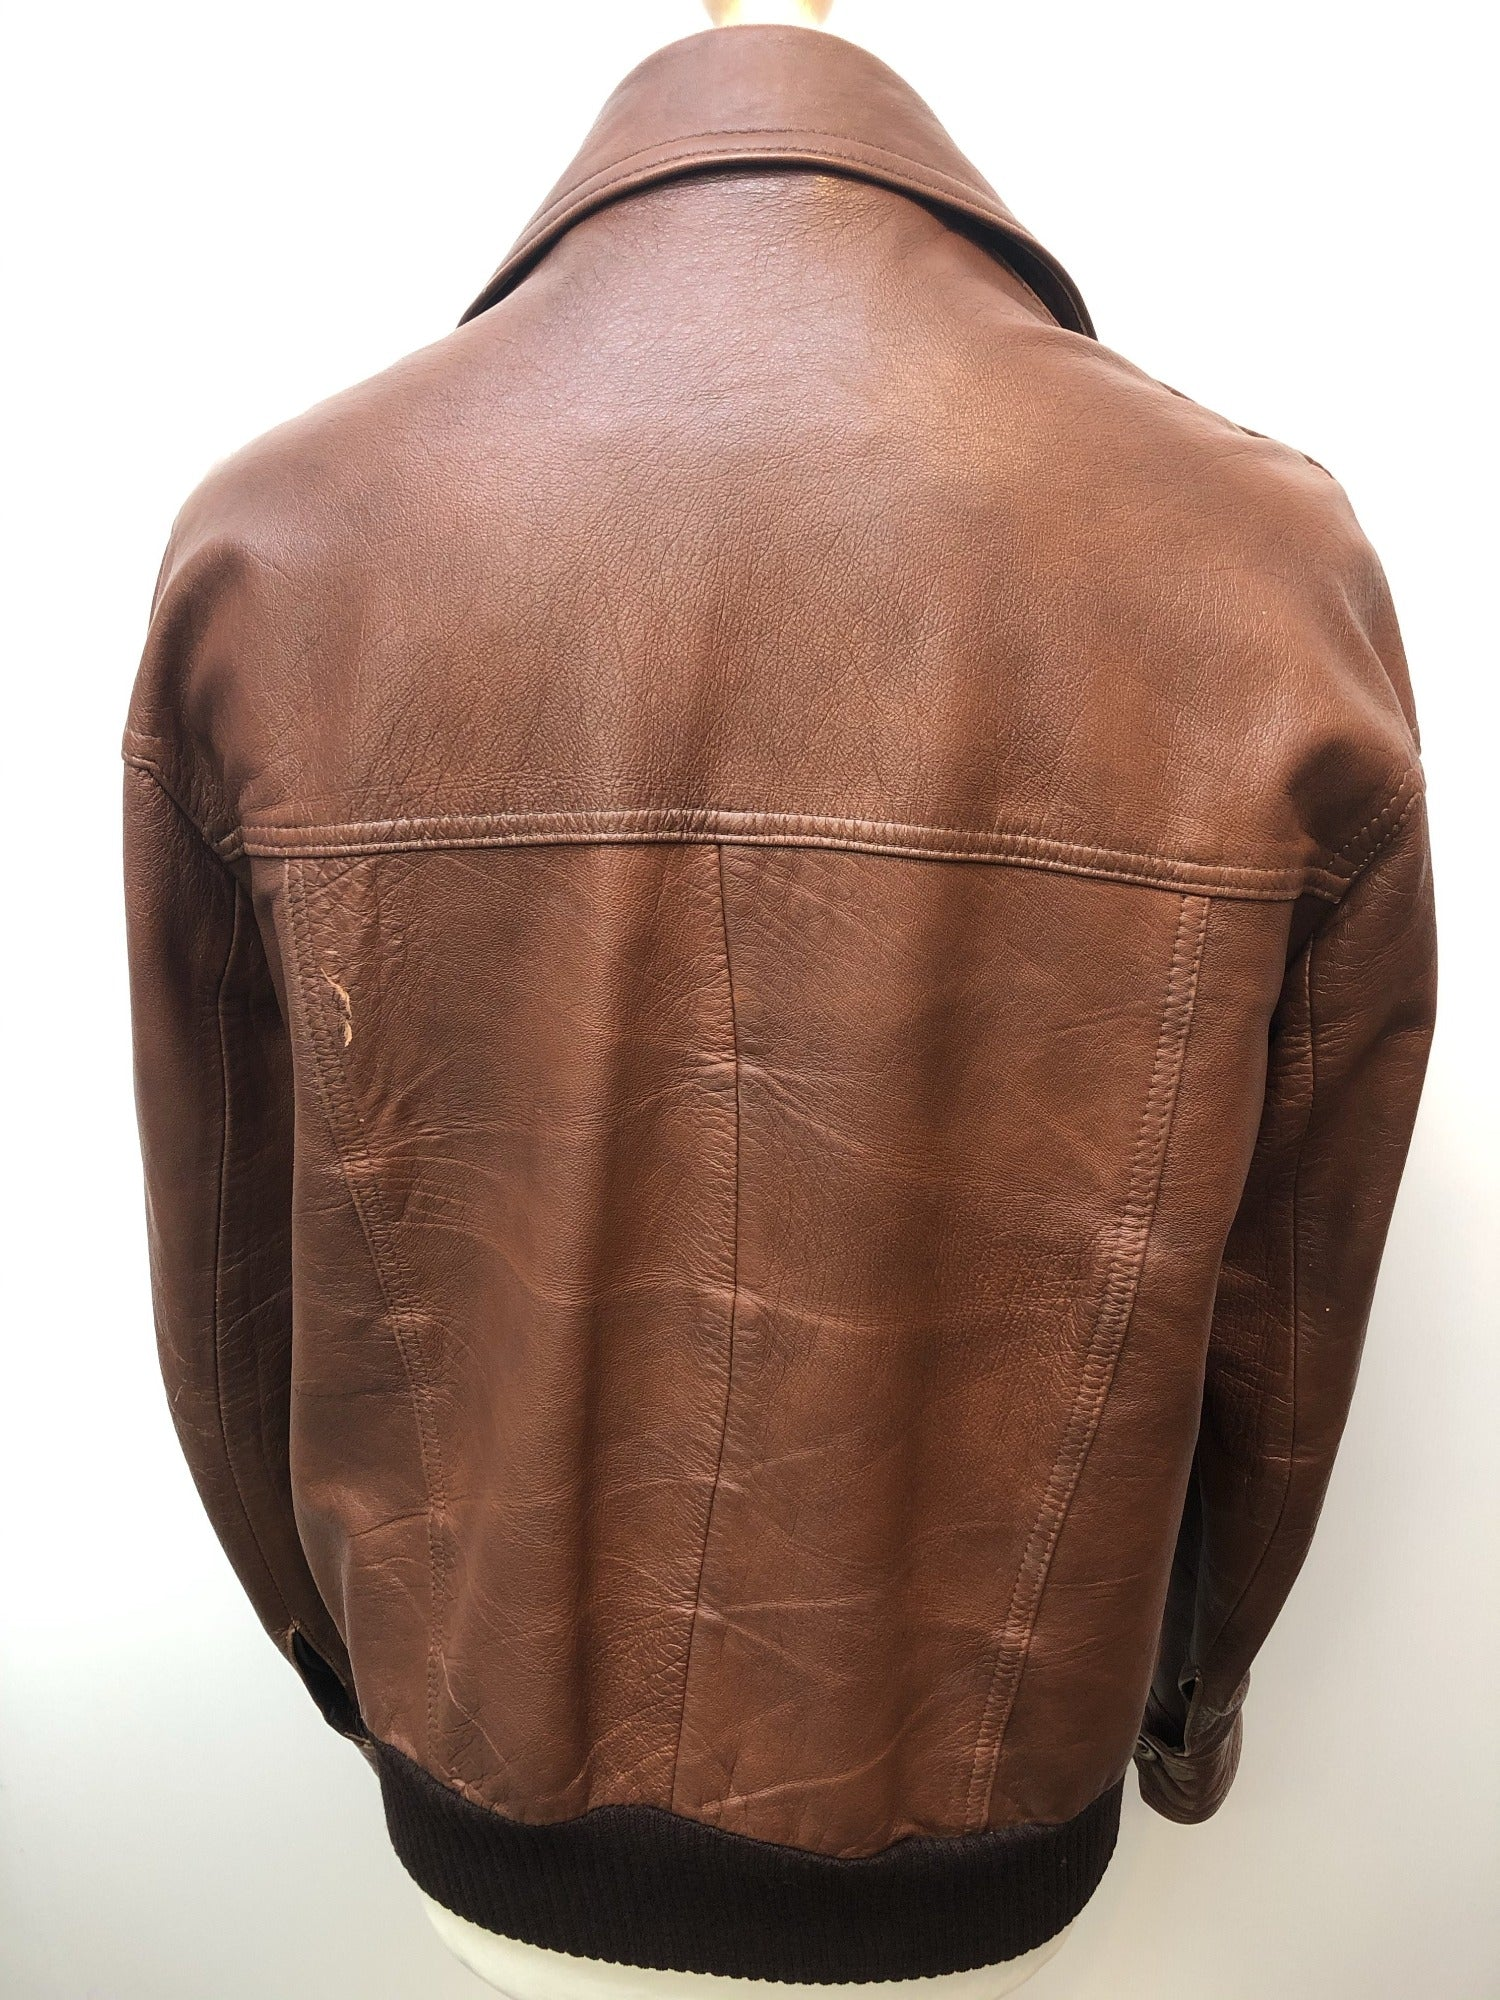 Mens Vintage Windsor Leatherwear Leather Jacket Brown - Size L - Urban Village Vintage